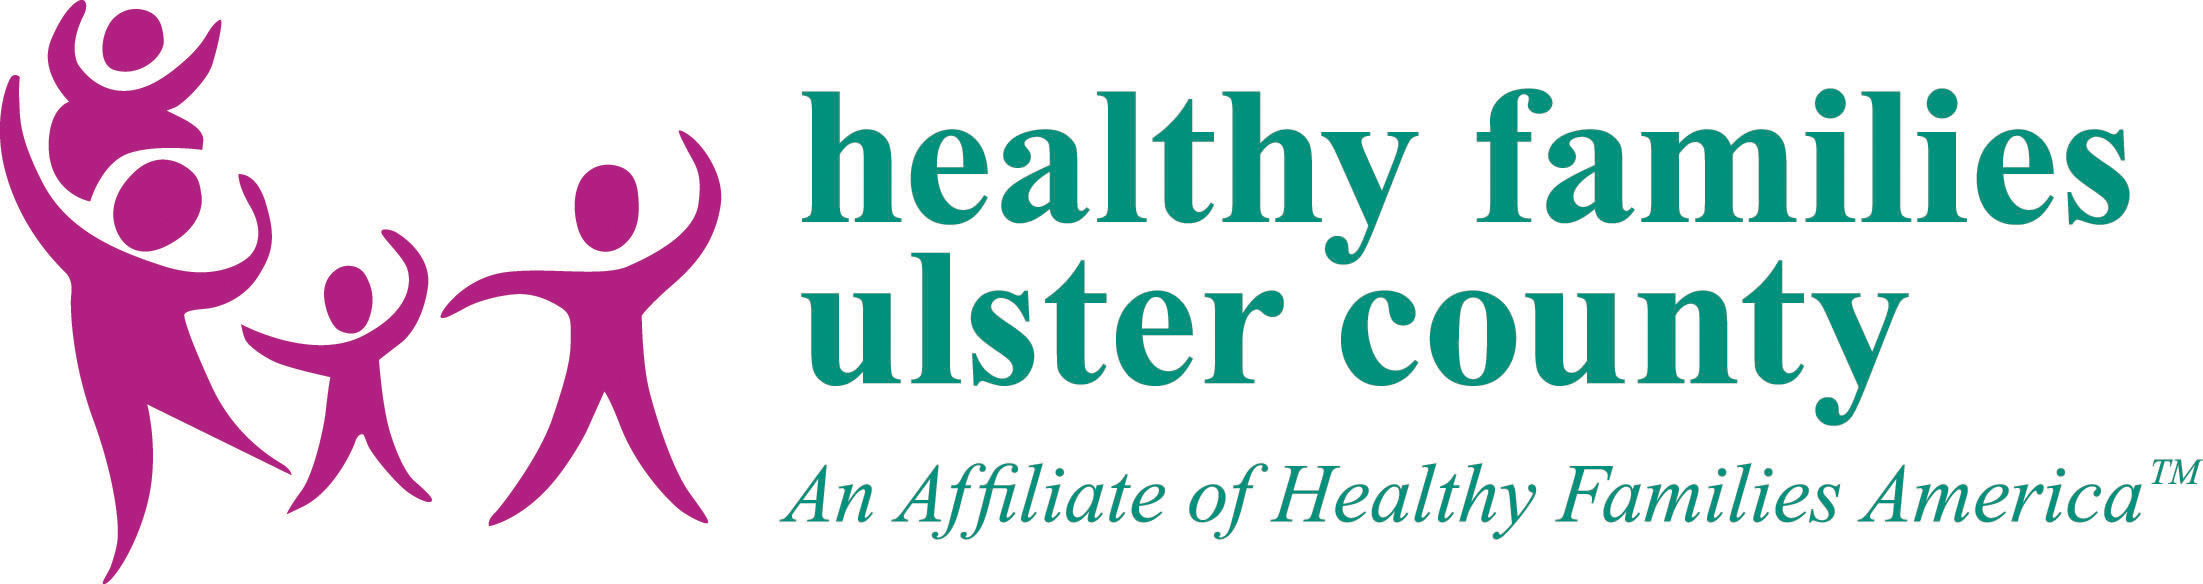 Ulster County Healthy Families logo